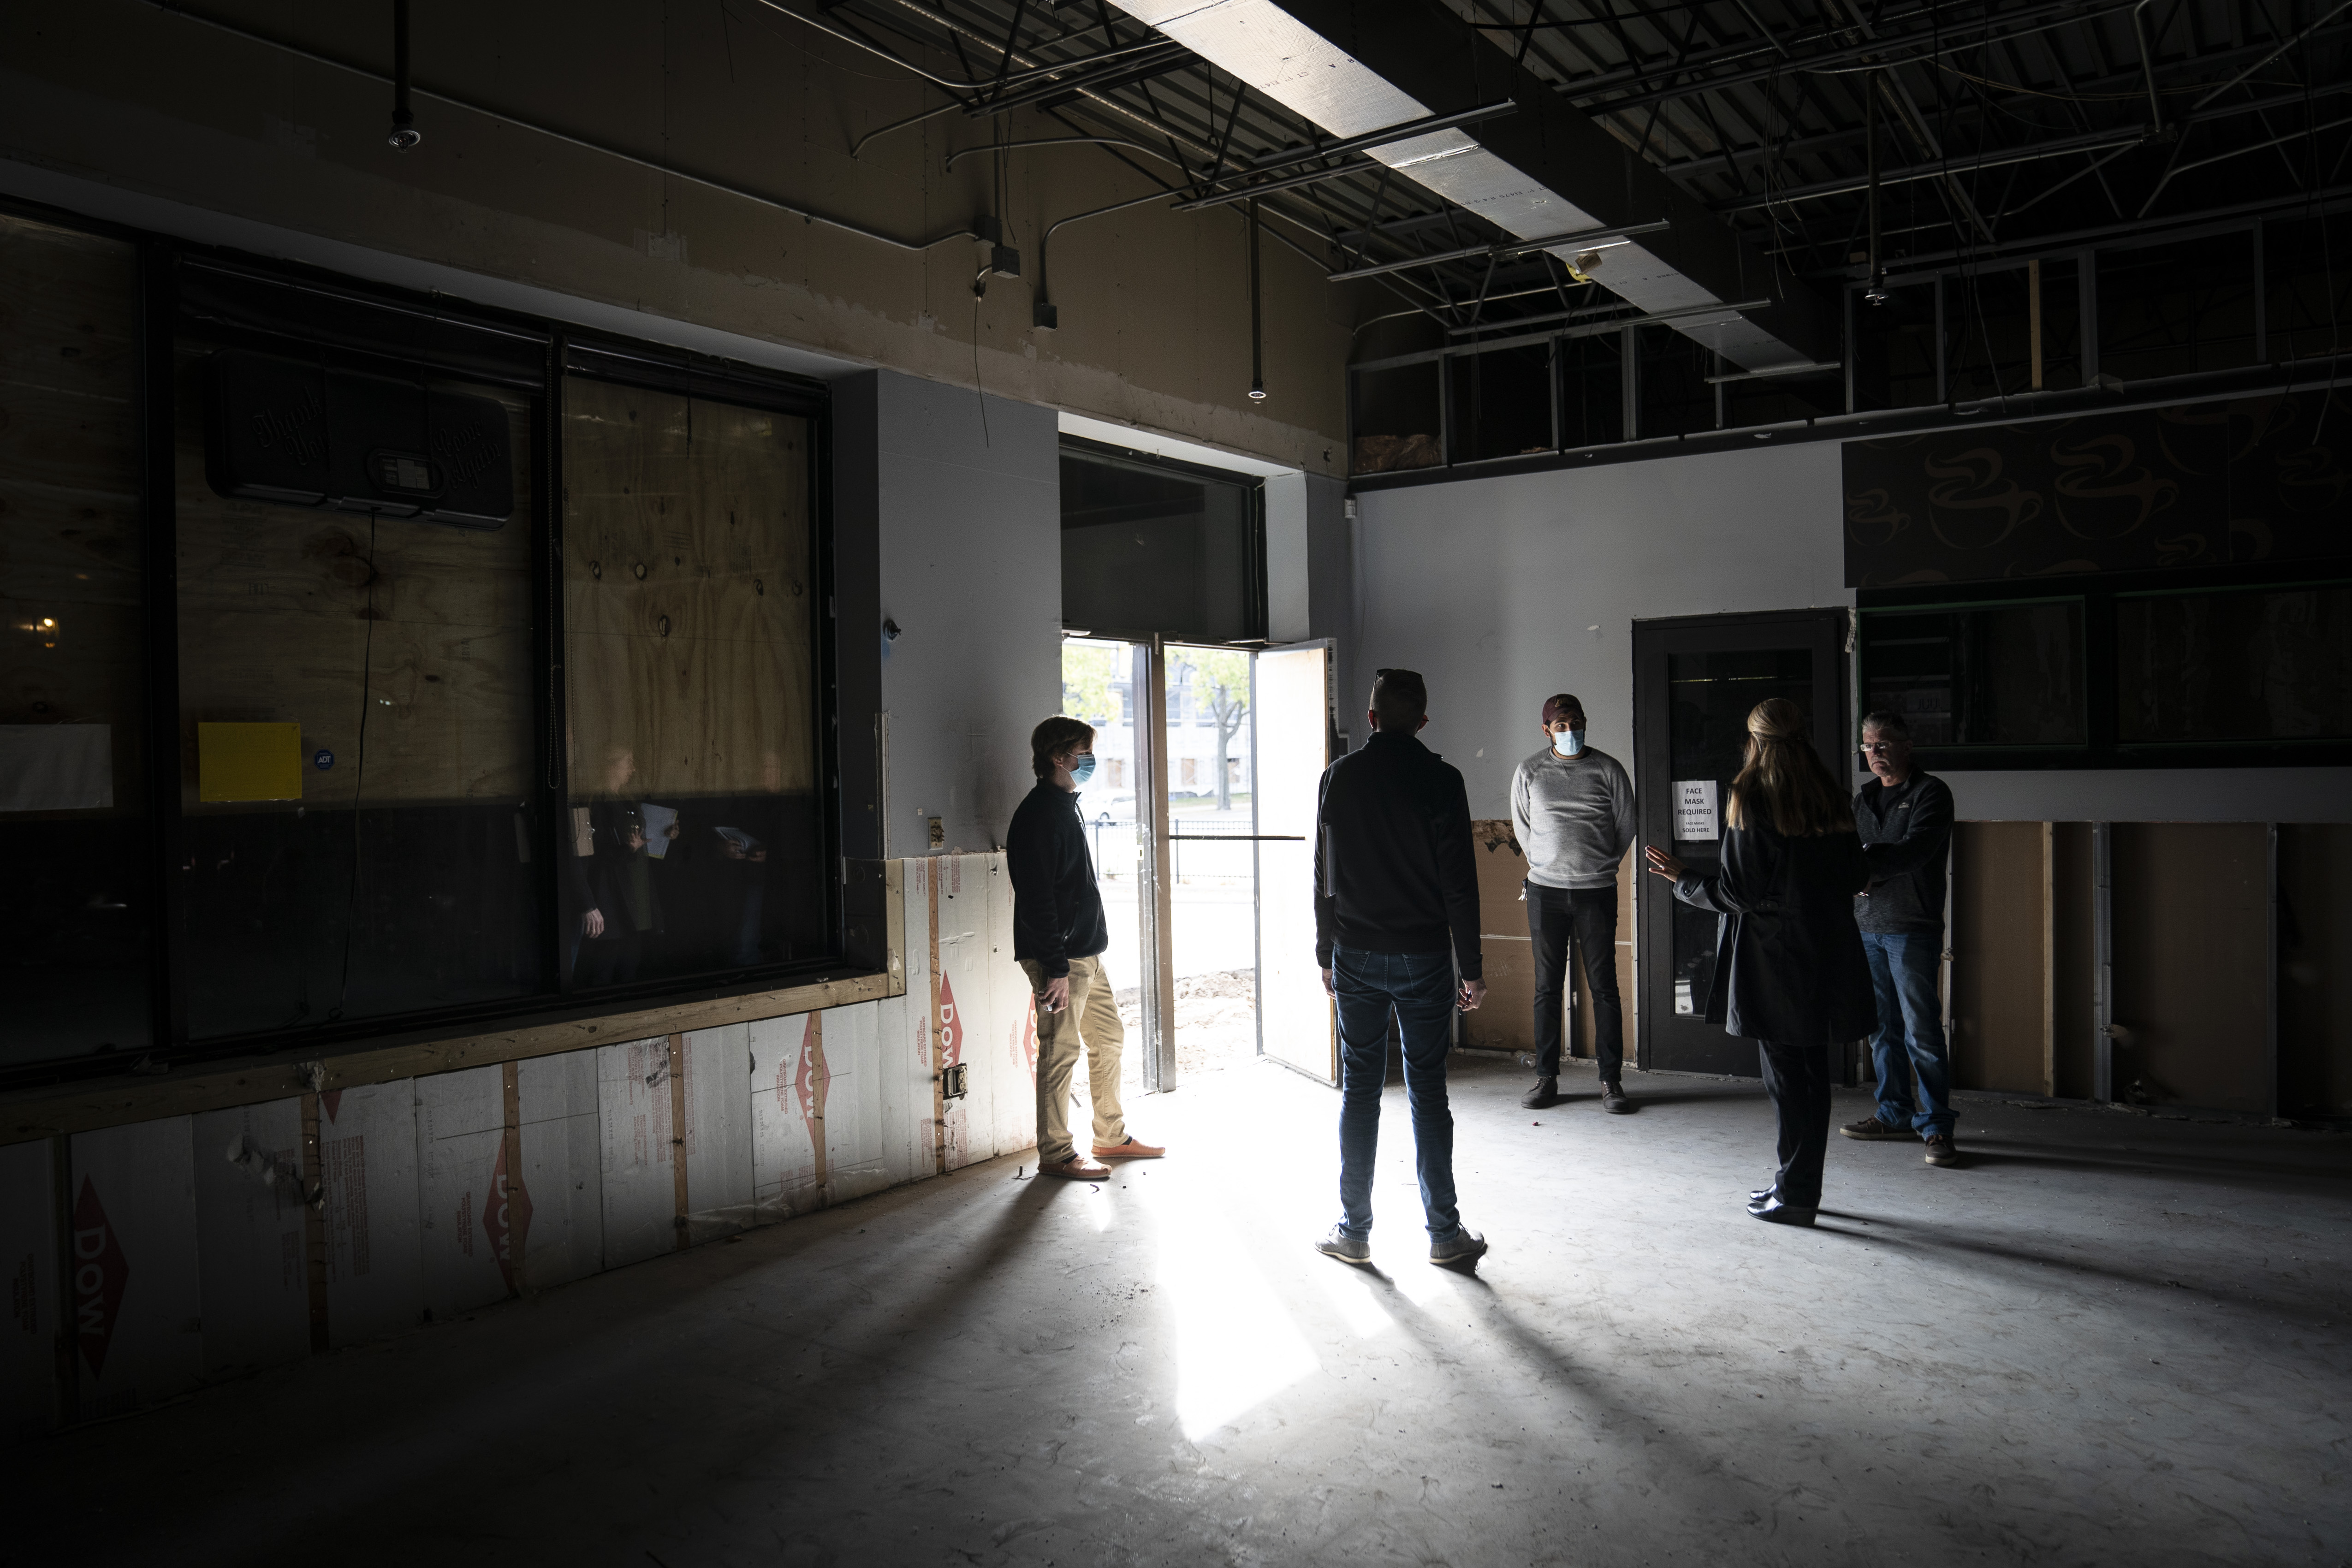 A to Z Gas Stop owner Joe Zerka (in white mask) talked with consultants and builders in the empty shell of his business in Minneapolis. The electricity had yet to be turned on.